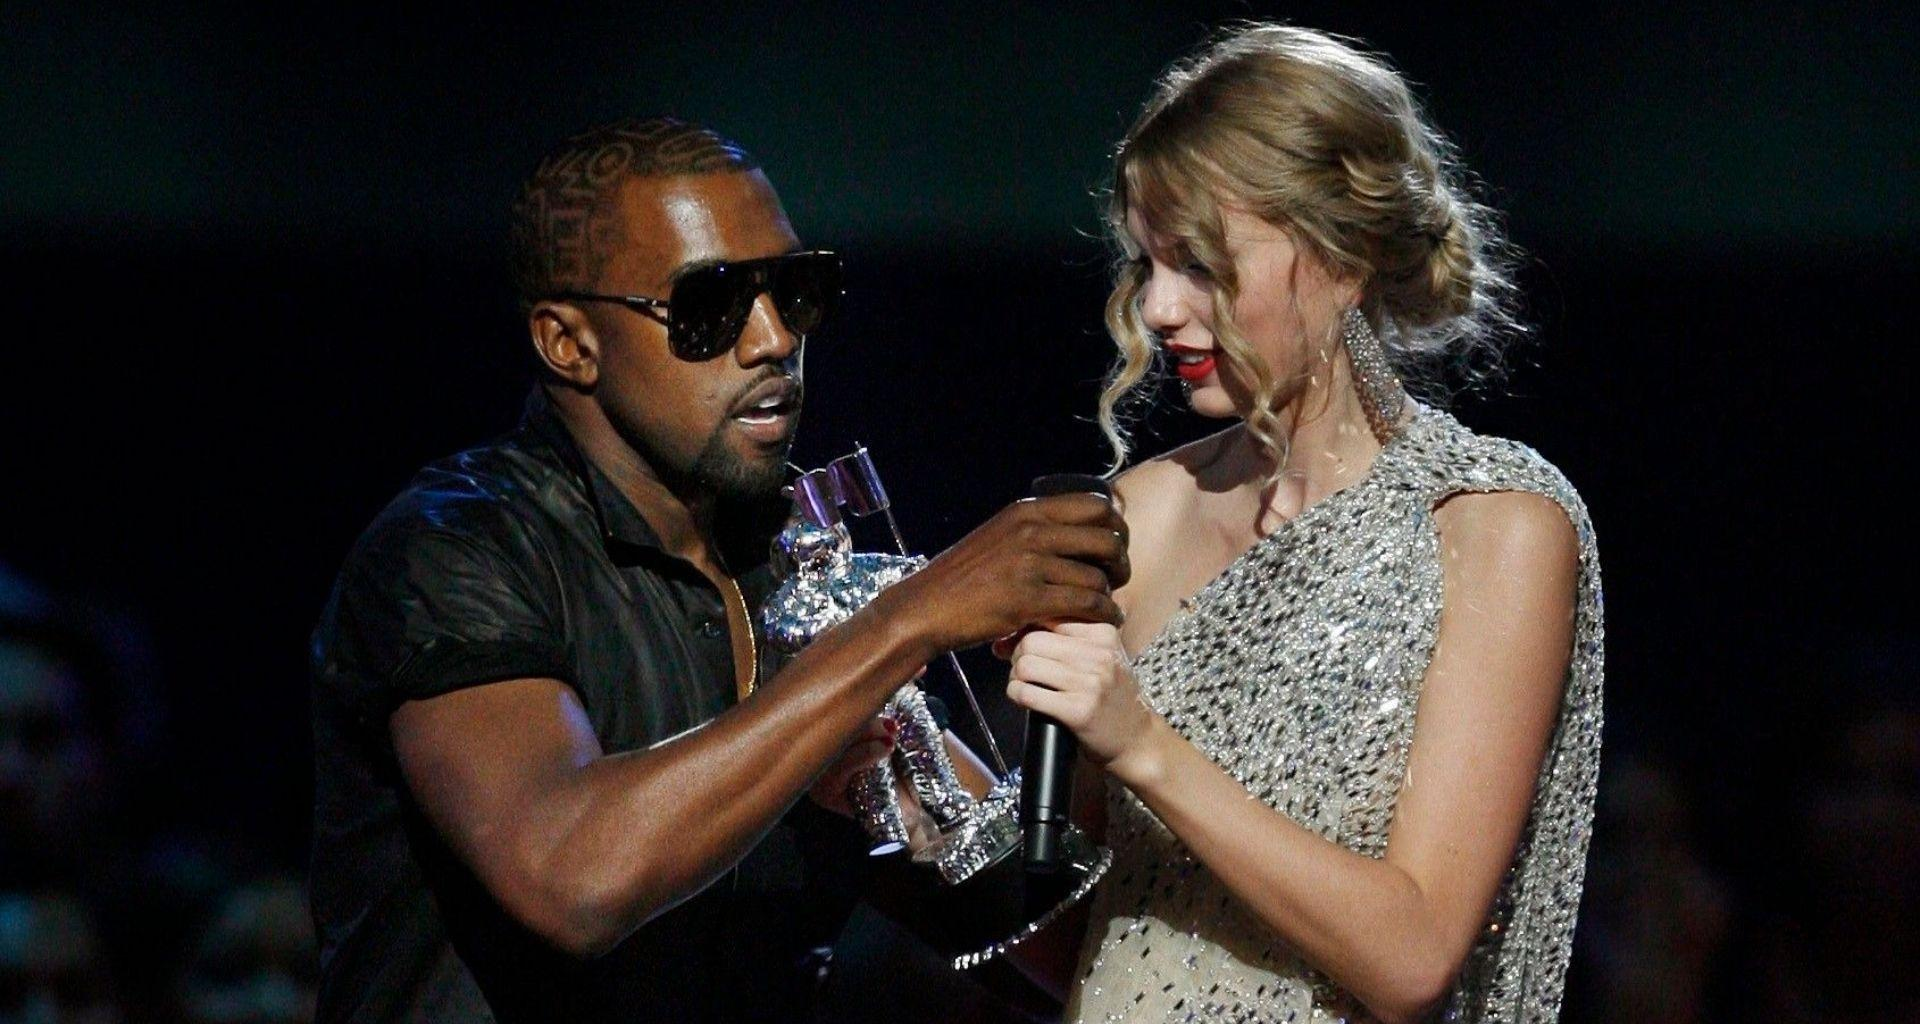 Taylor Swift Shares Diary Entry About The VMAs Drama With Kanye West From 2009